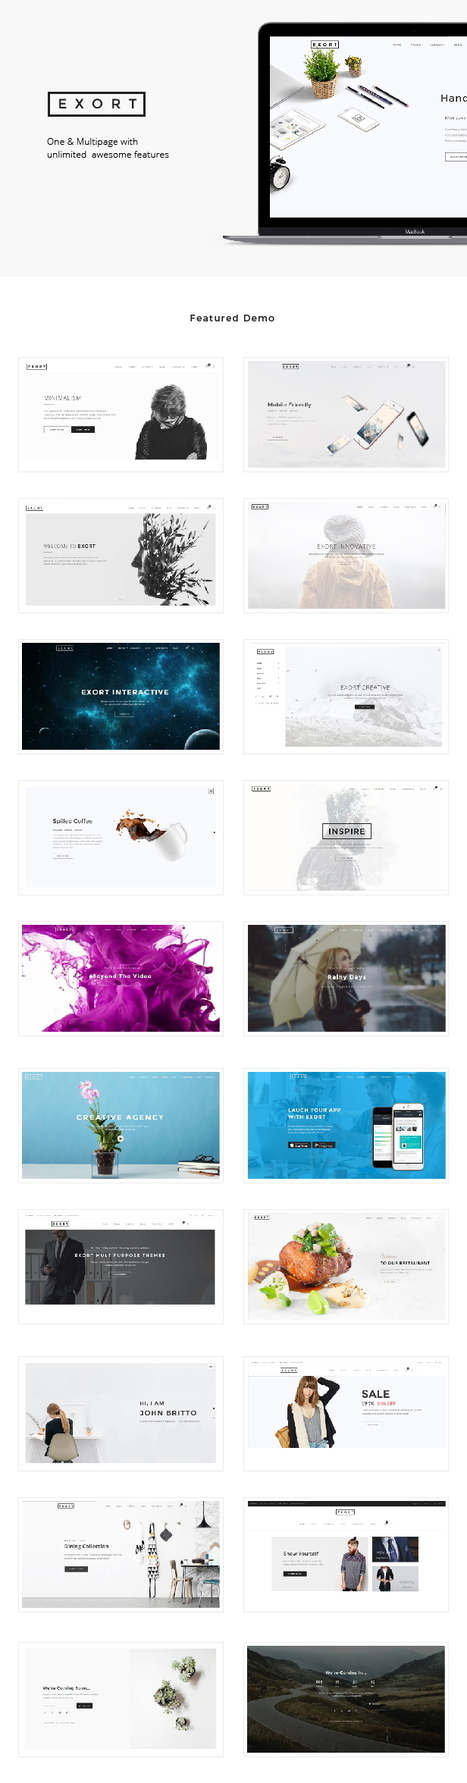 Exort Stunning Responsive Multipurpose Bootstrap Template Download | Creative Themes and Template Download | Scoop.it